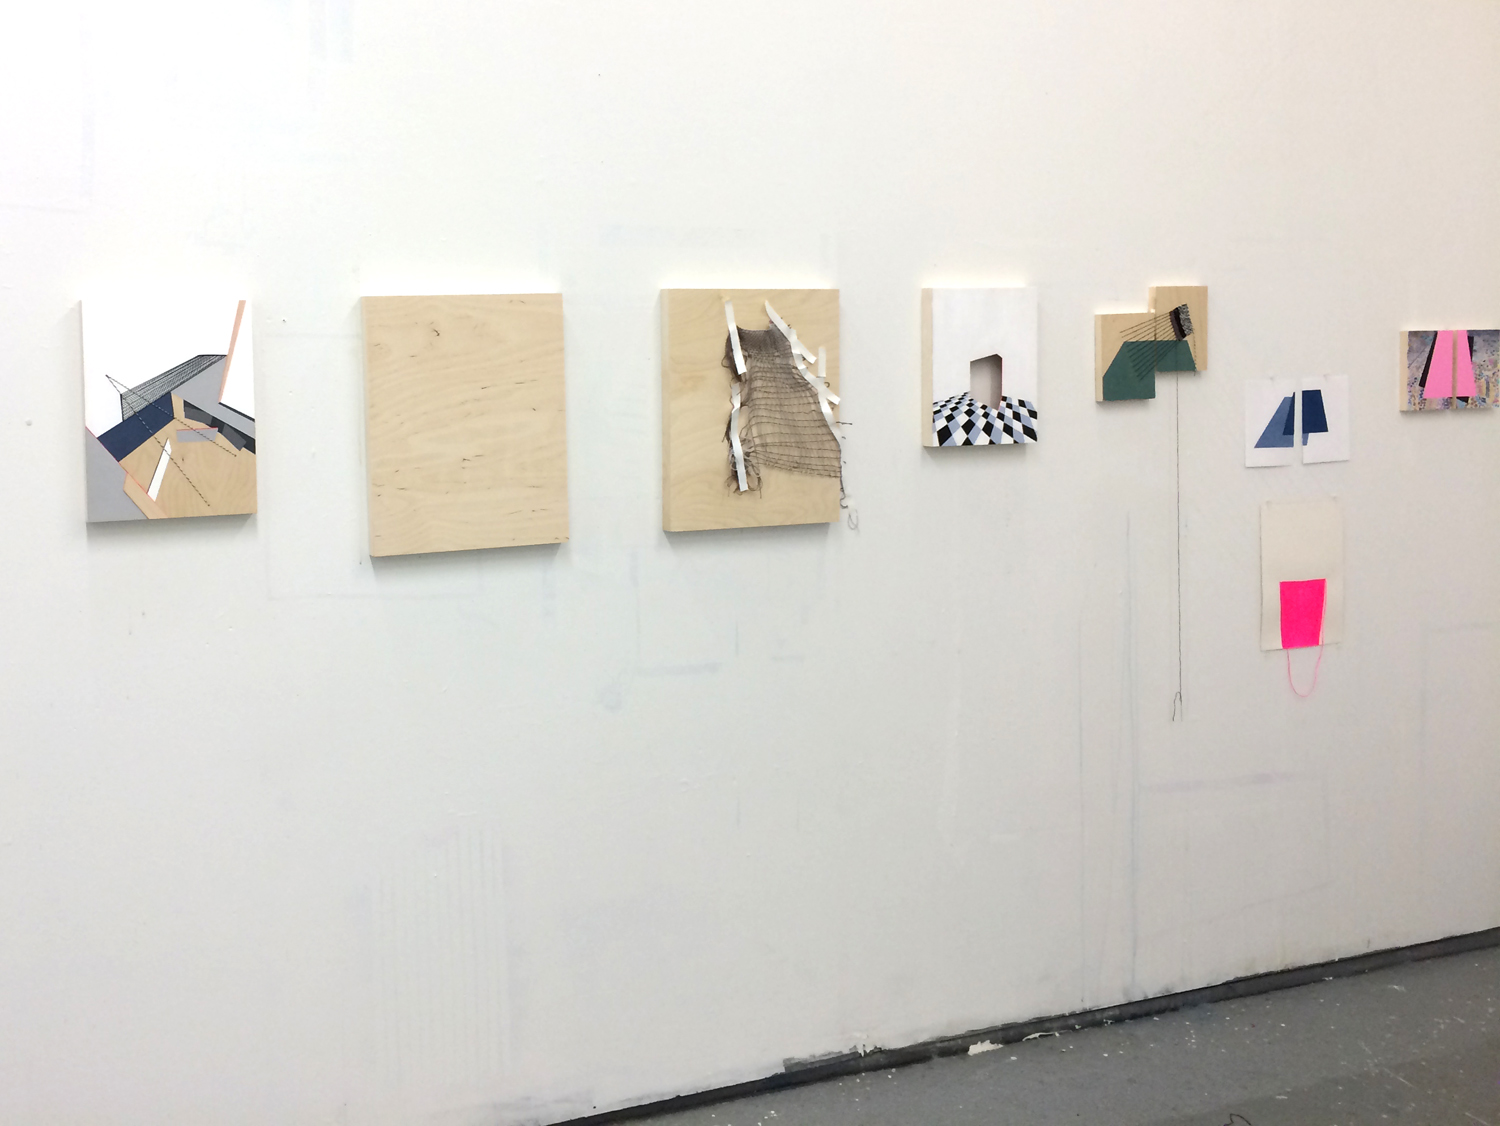 studio wall, works in progress